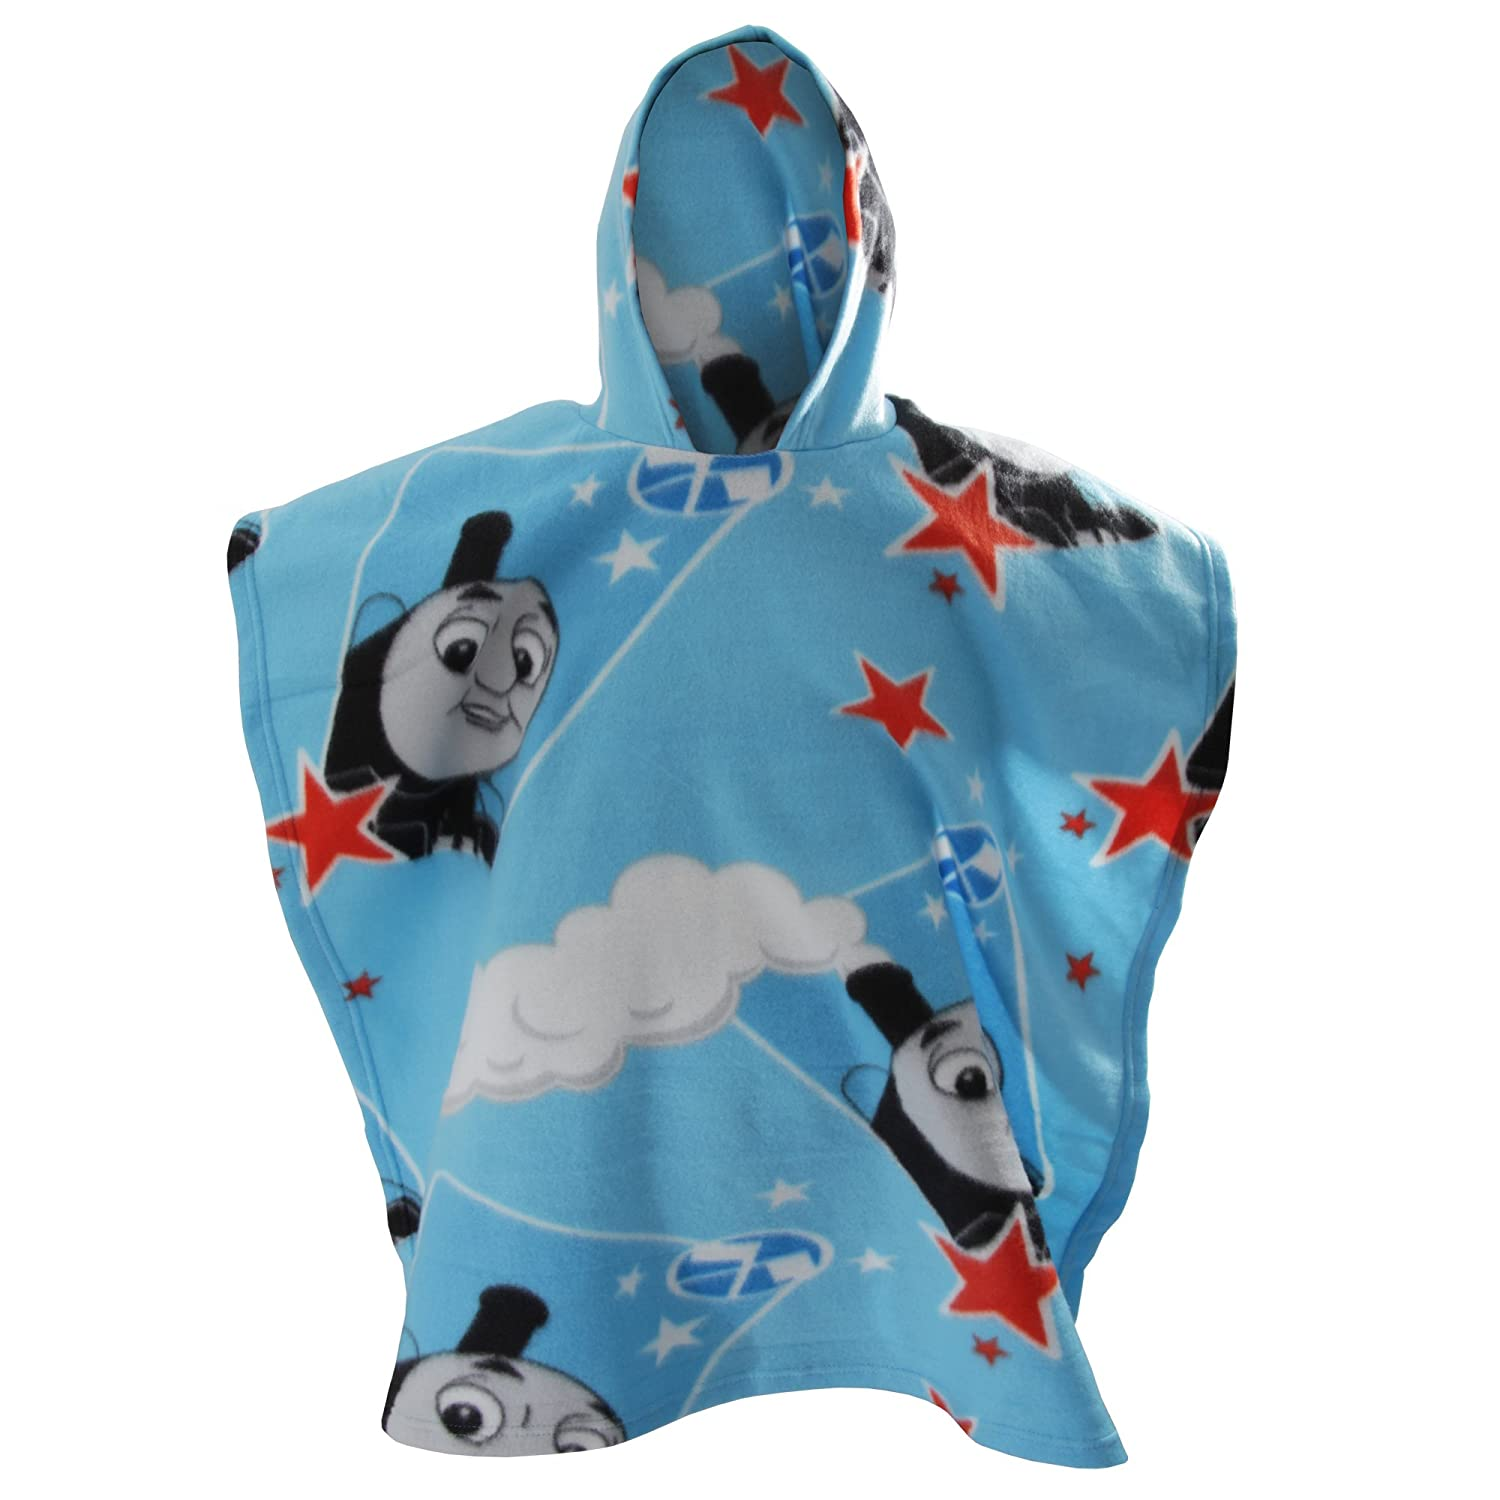 Thomas & Friends Childrens Boys Race Fleece Poncho (28in x 63in) (Blue) Thomas the Tank Engine UTMS326_1